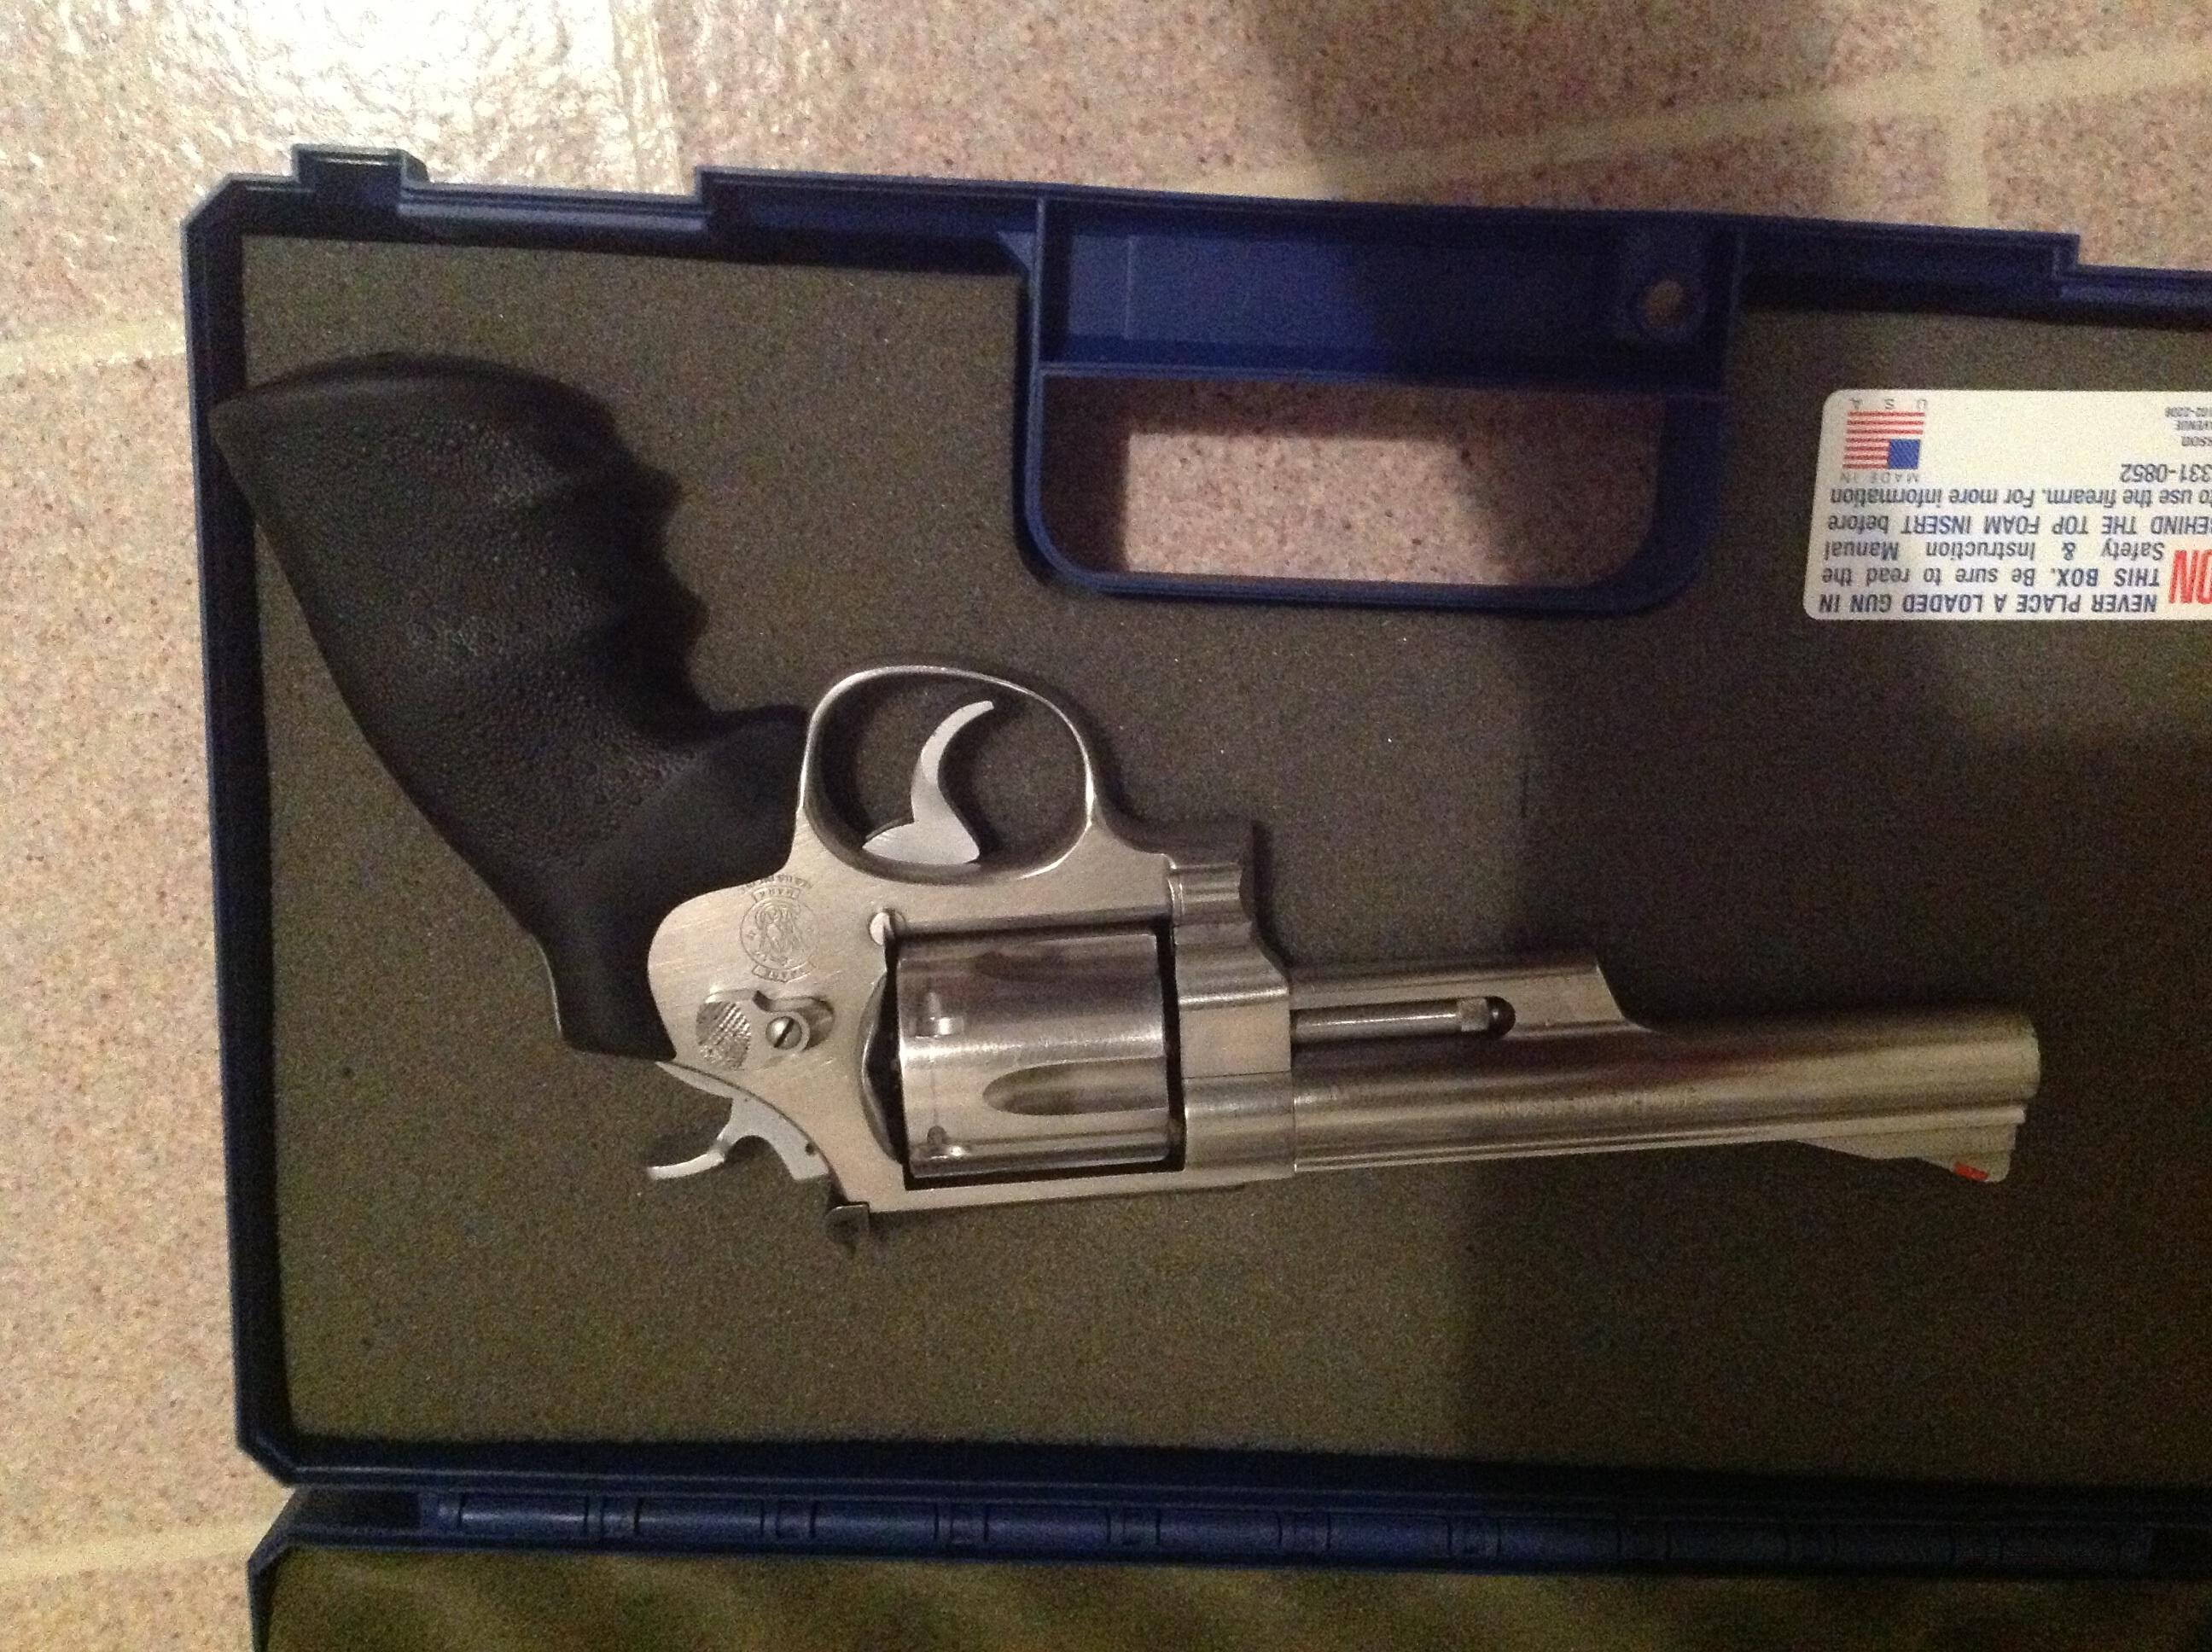 Smith and Wesson   Guns > Pistols > Smith & Wesson Revolvers > Model 629